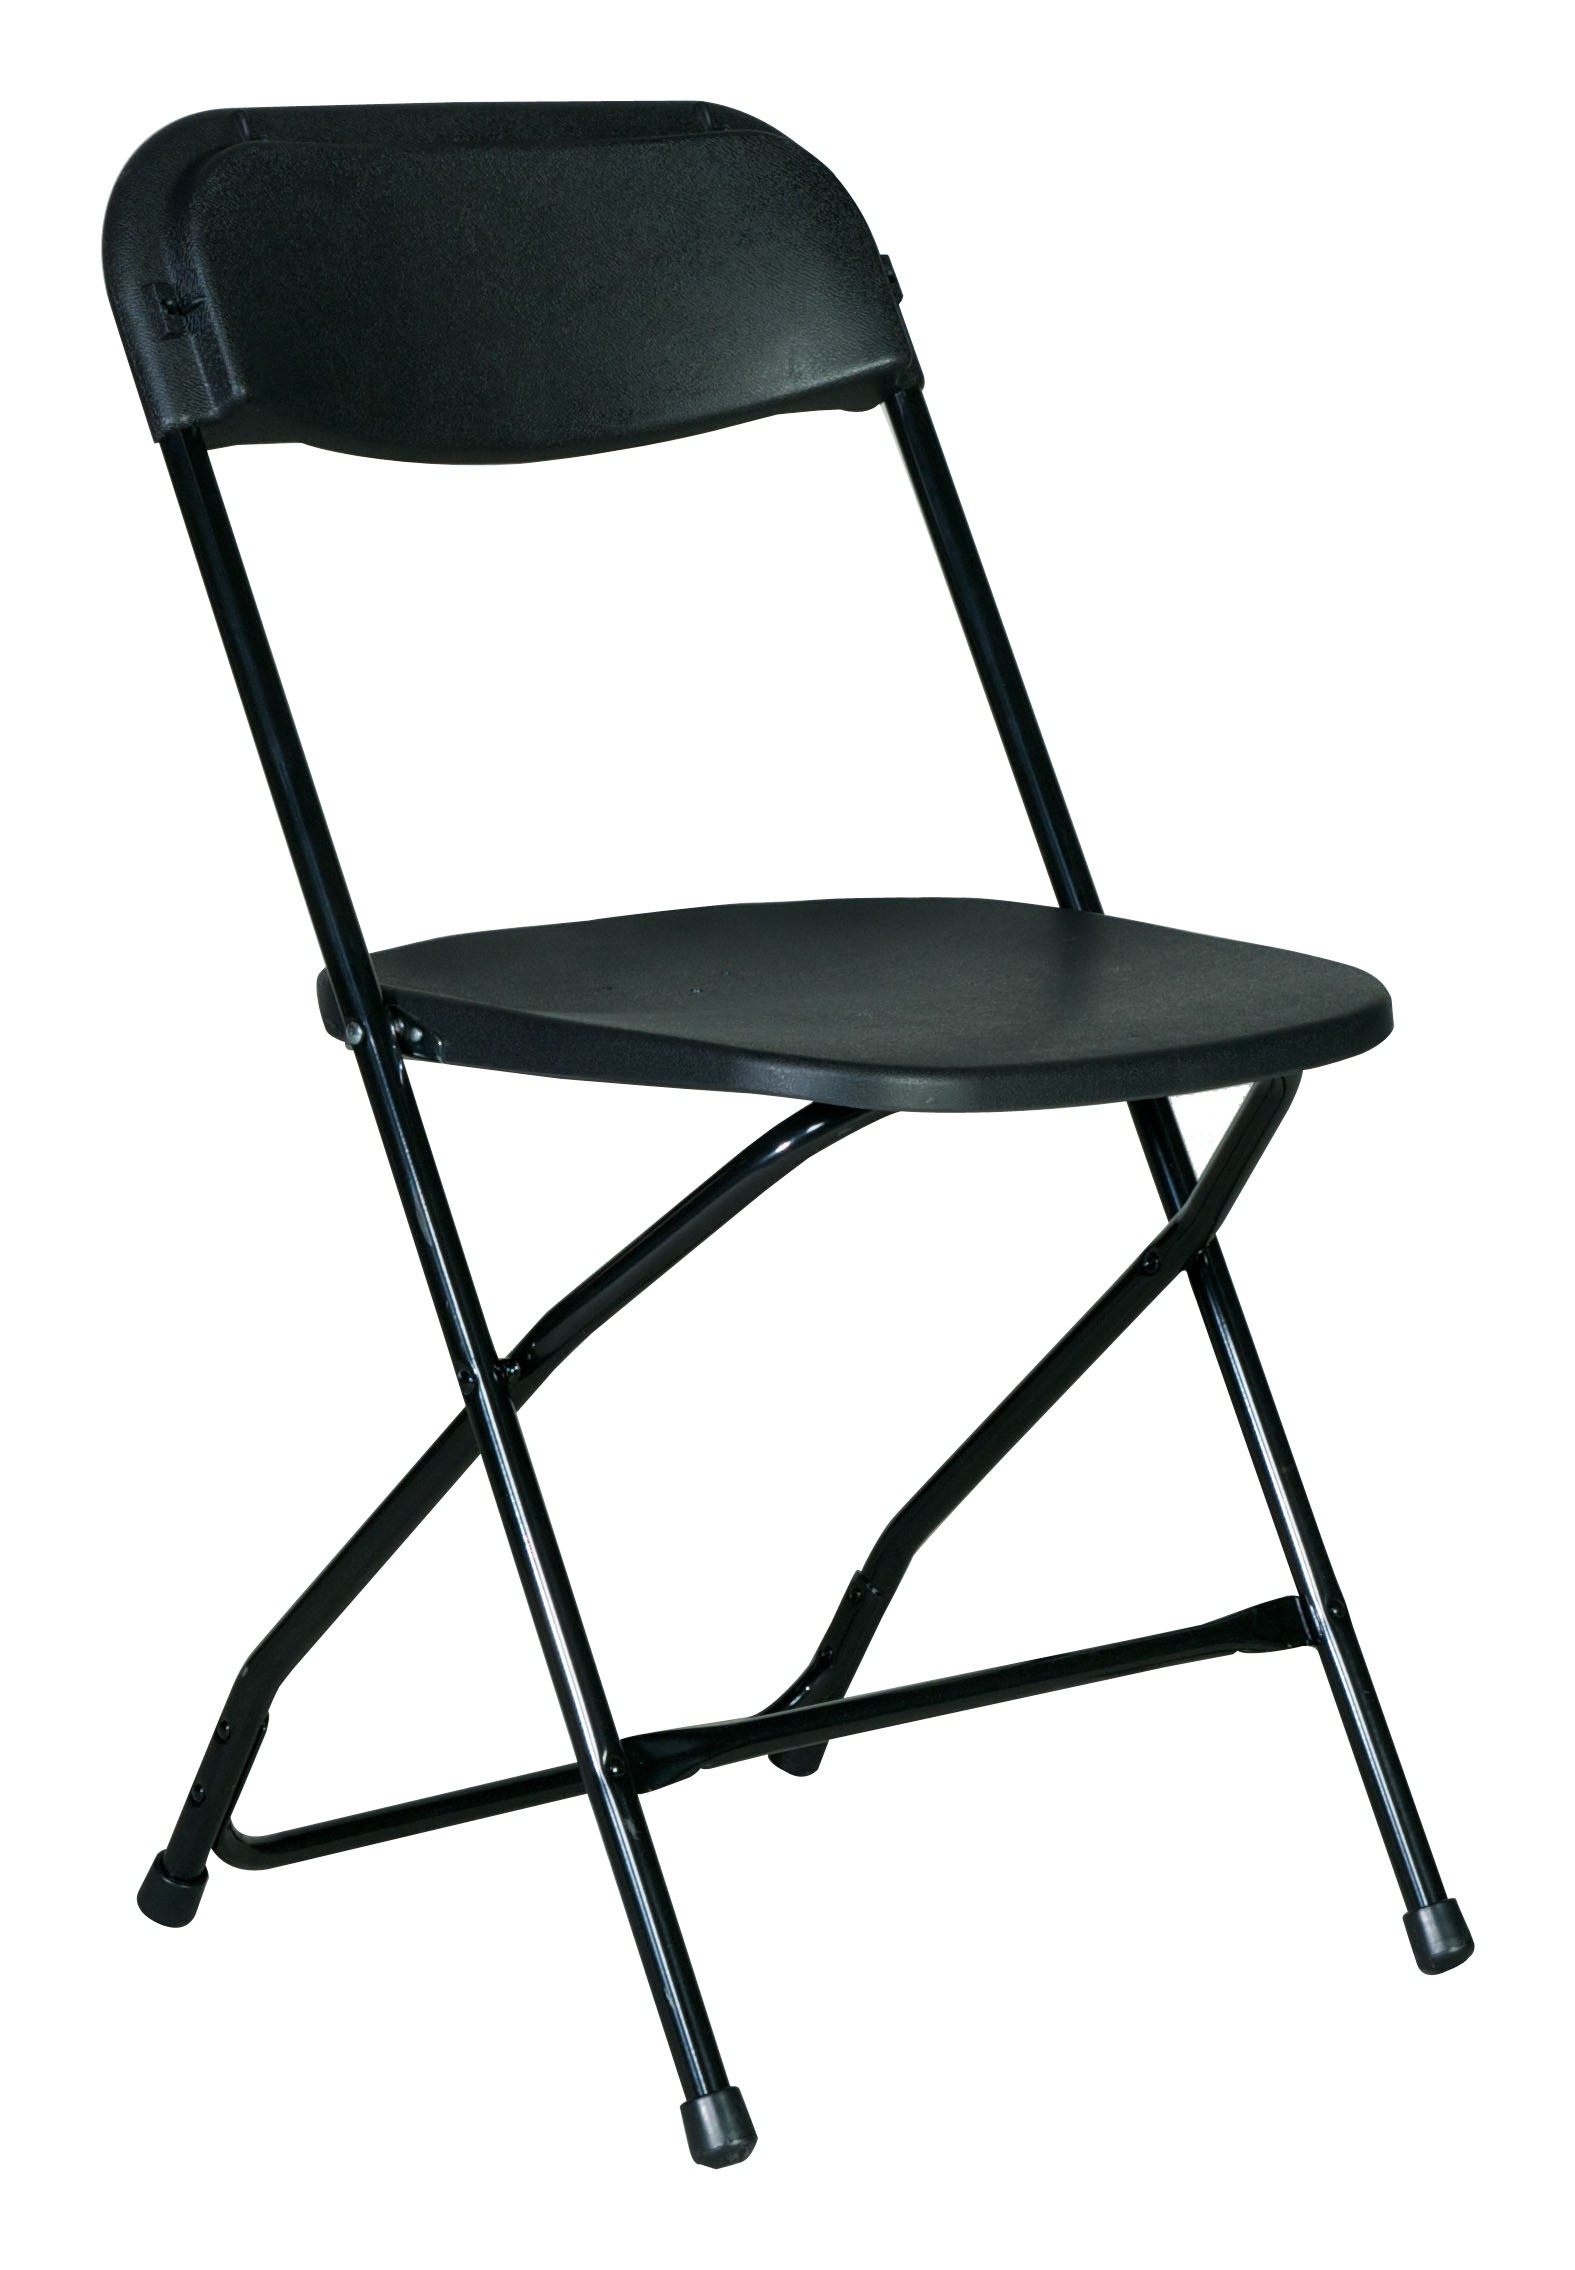 white multi purpose salon chair posture and ottoman black folding roland l appleton inc